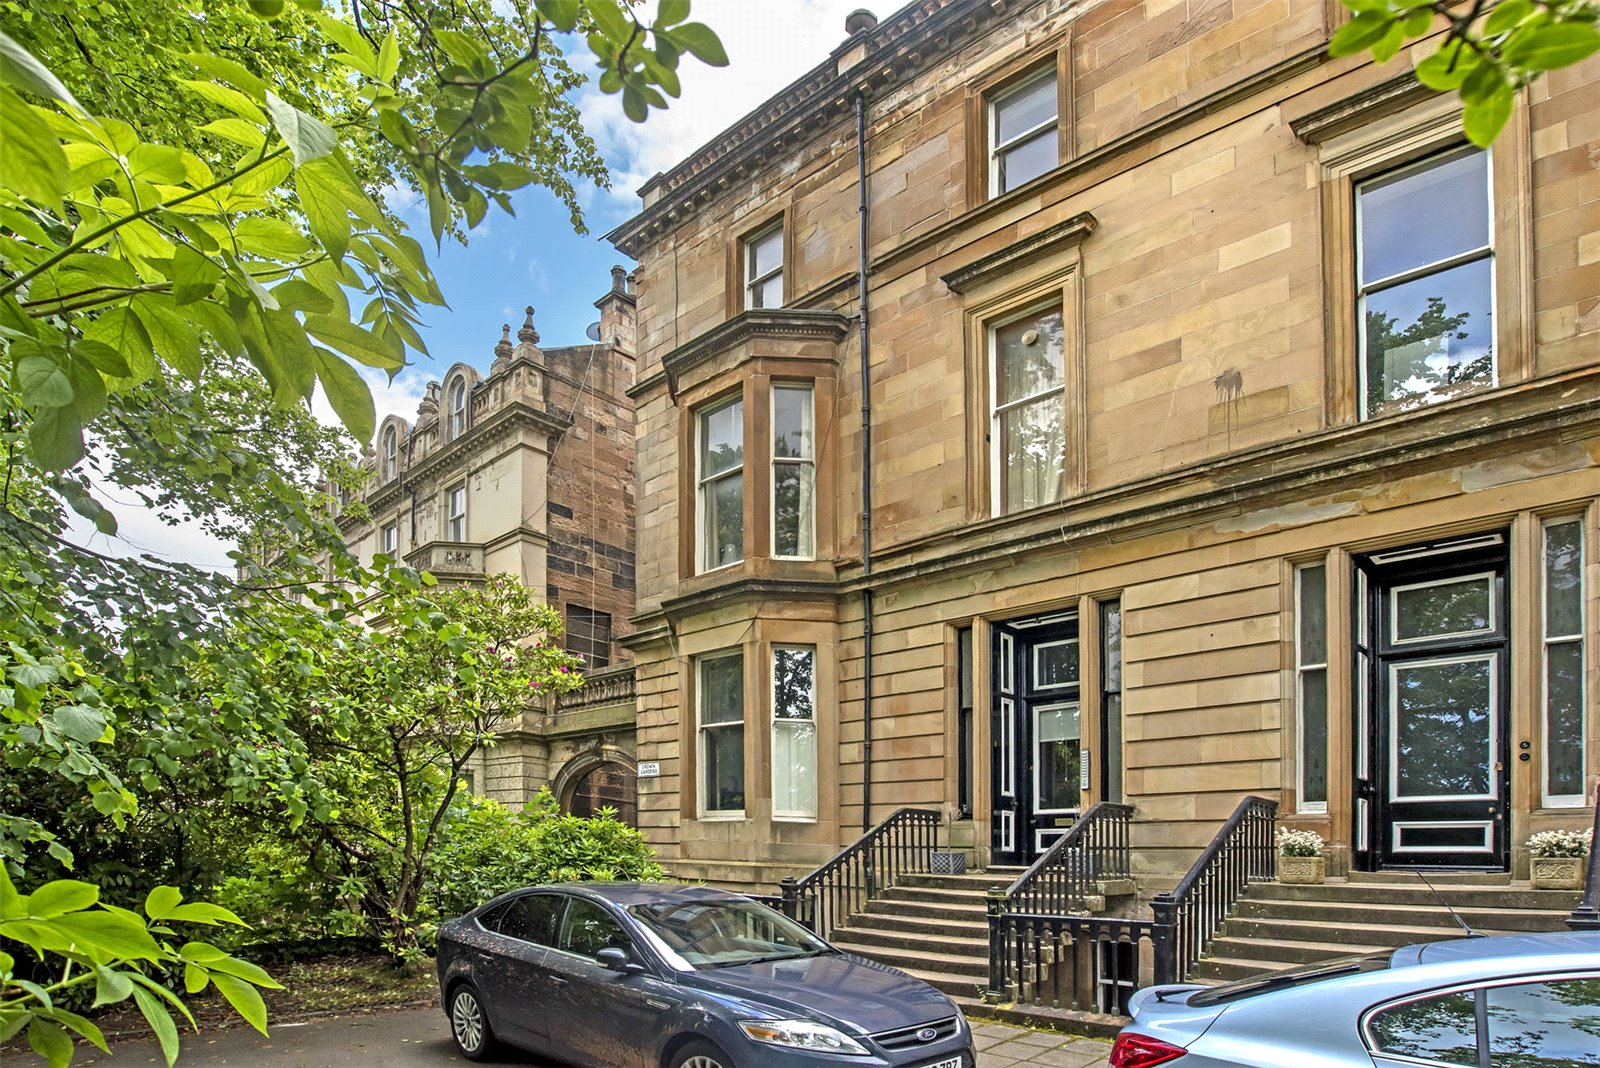 Our Property of the Week: Flat 8, 1 Crown Gardens, Glasgow